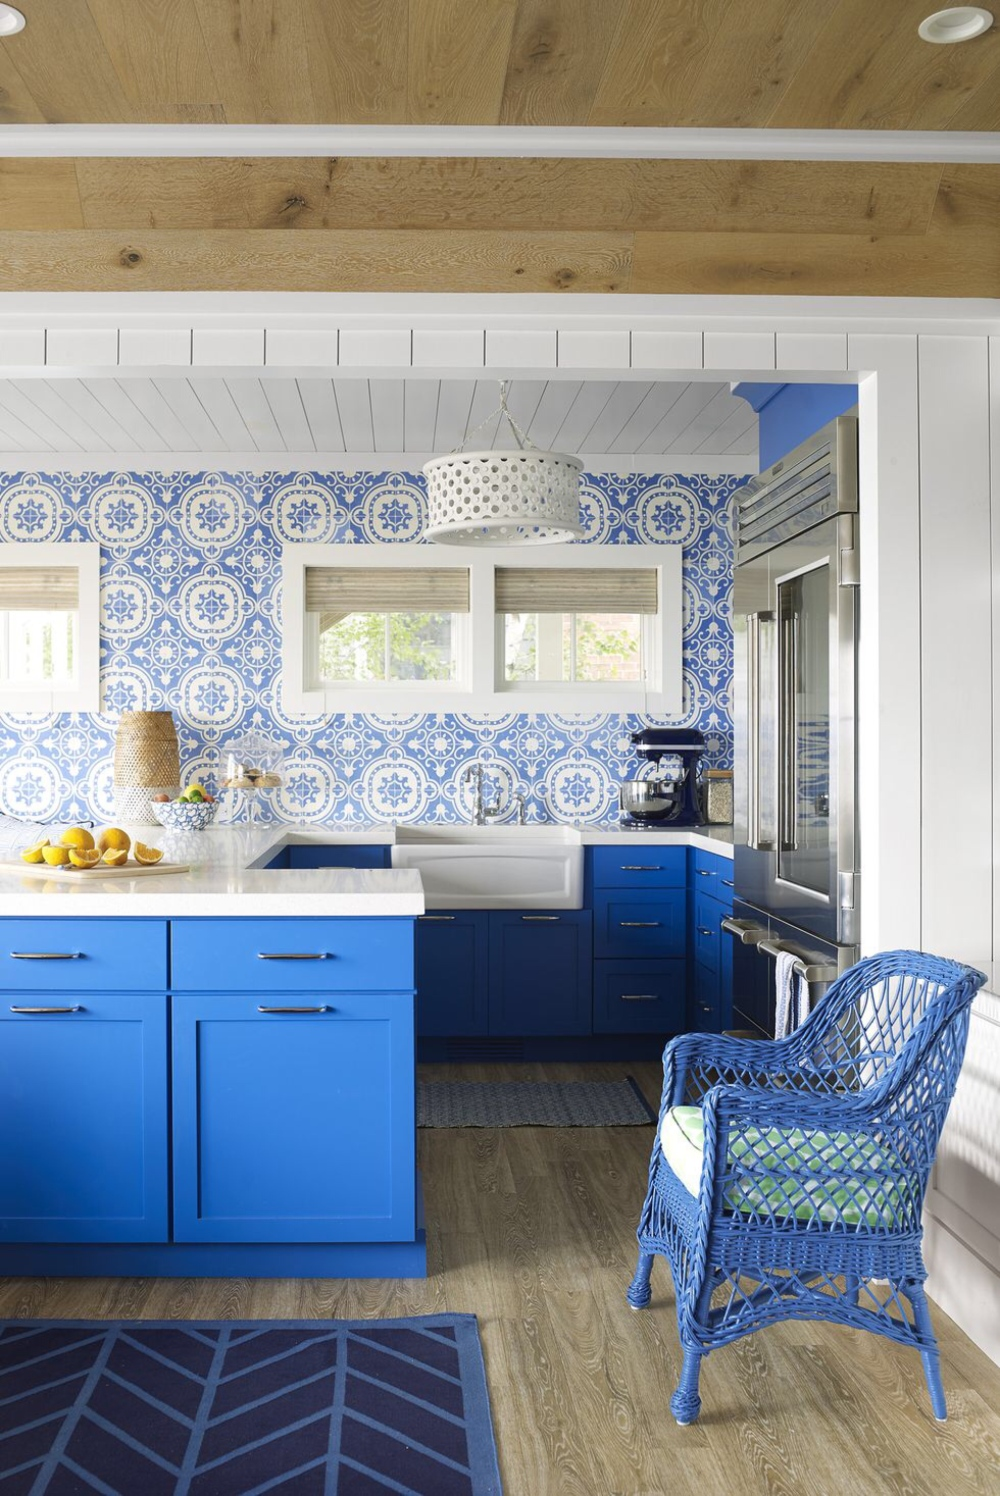 Kitchen_home_decor_Article_from_House_Beautiful_summer_home_in_Ludington_Michigan_decor_decoration_blue_white_beach_decor_interiors_and_more_vacations_980_1467.jpg